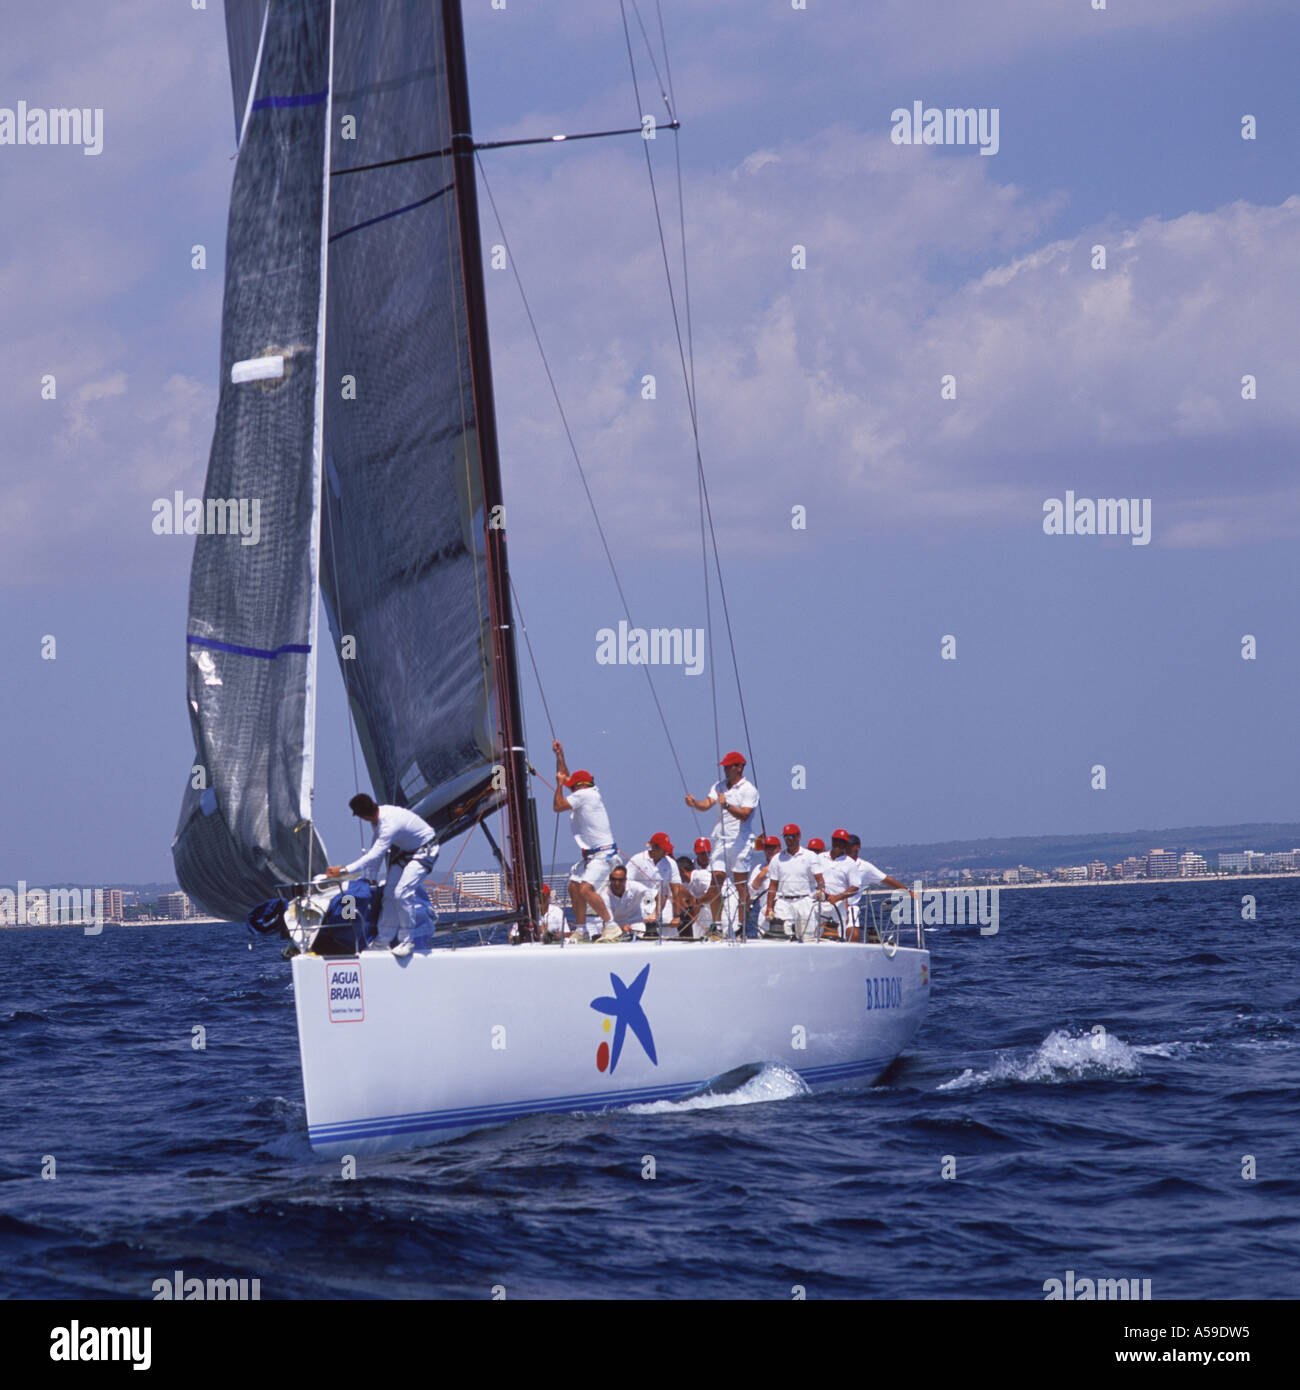 Bribon in IMS 500 category skippered by His Majesty King Juan Carlos of Spain during 22nd Copa Del Rey Kings Cup Regatta 2003 - Stock Image